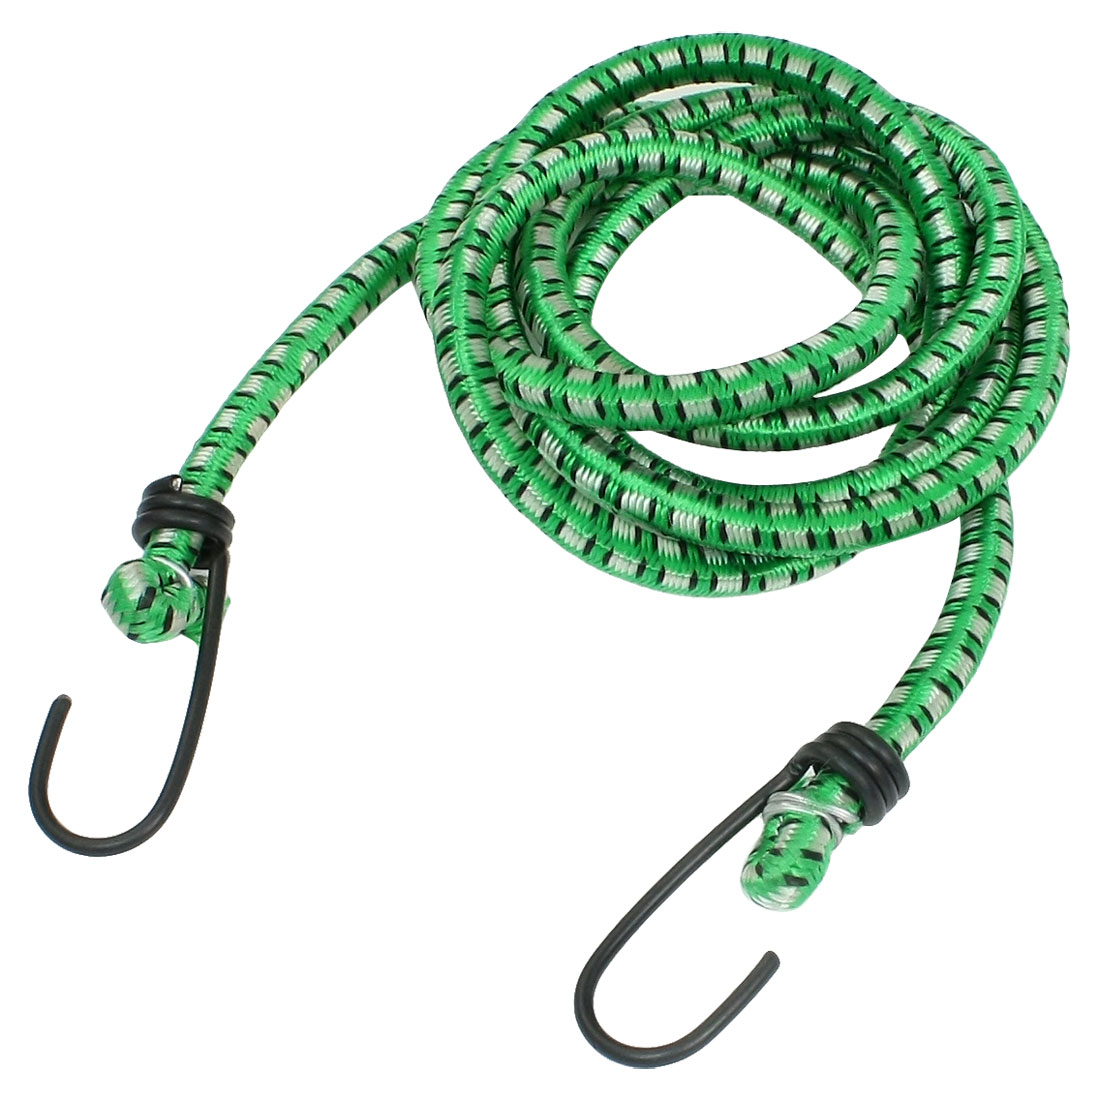 1.5M Long Green White Elastic Double Hook Bicycle Luggage Cord